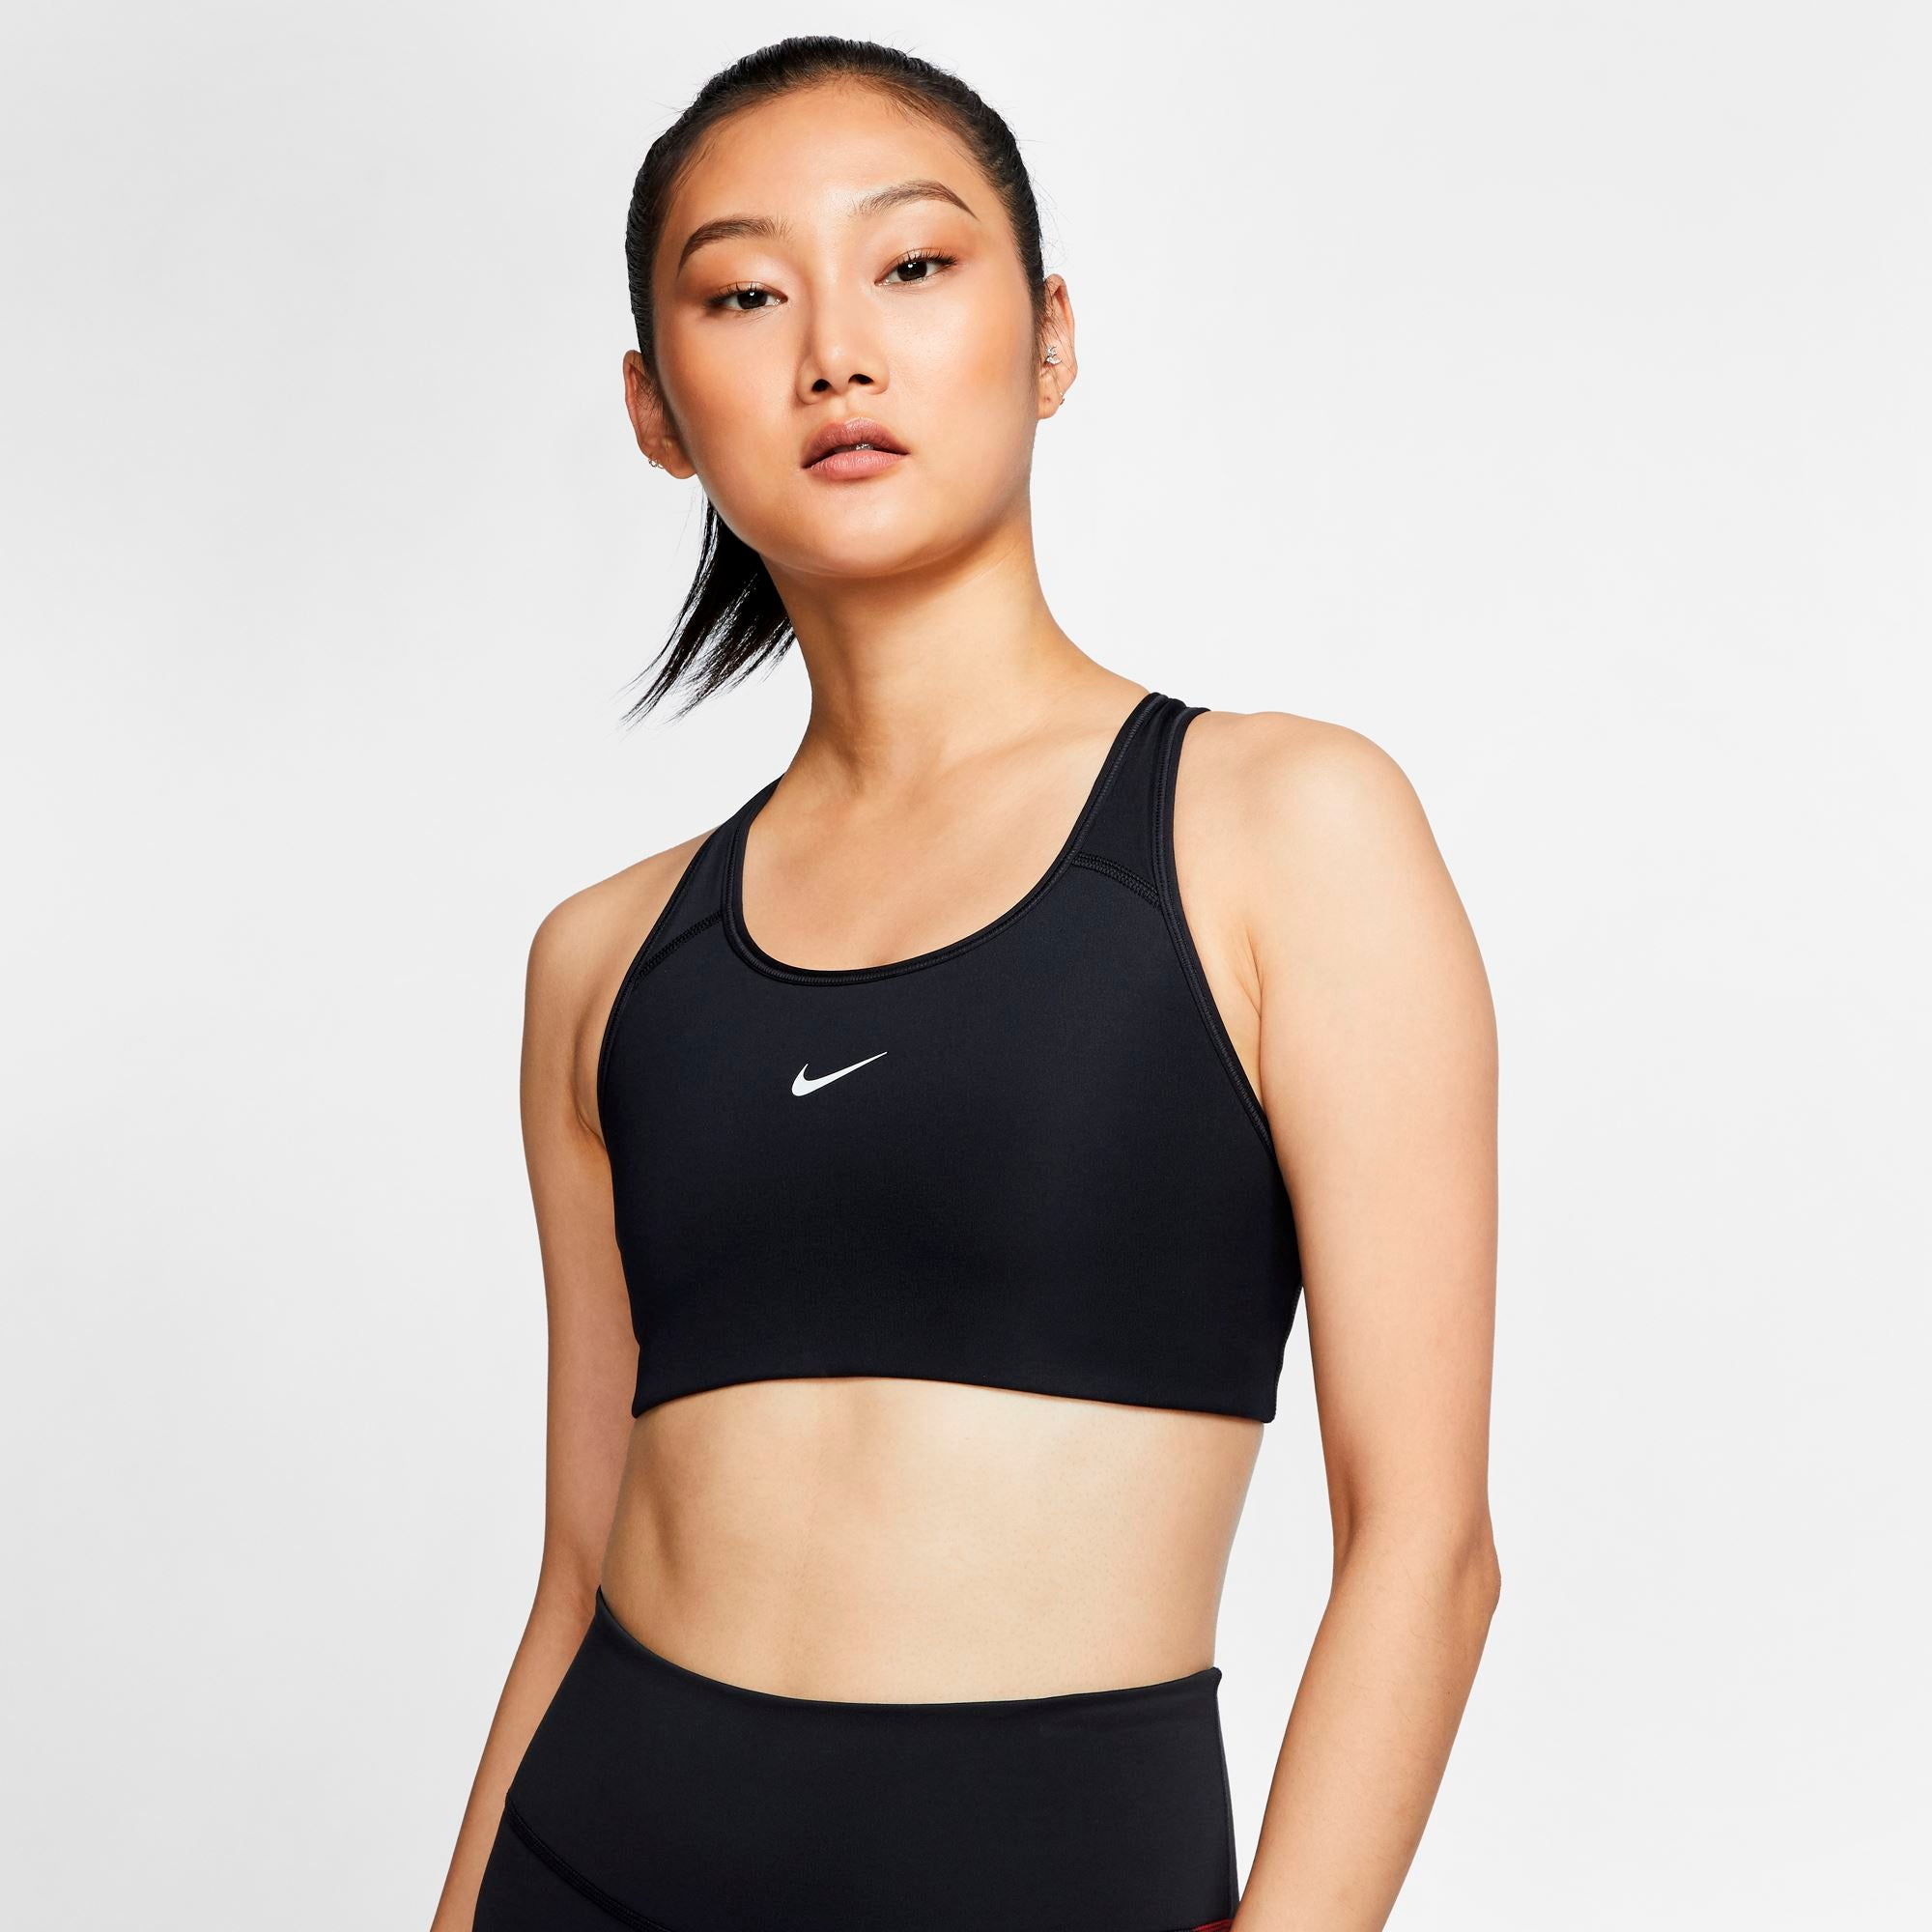 Nike Womens Dri-Fit Swoosh Medium Support Sports Bra - Black/White SP-ApparelBras-Womens Nike